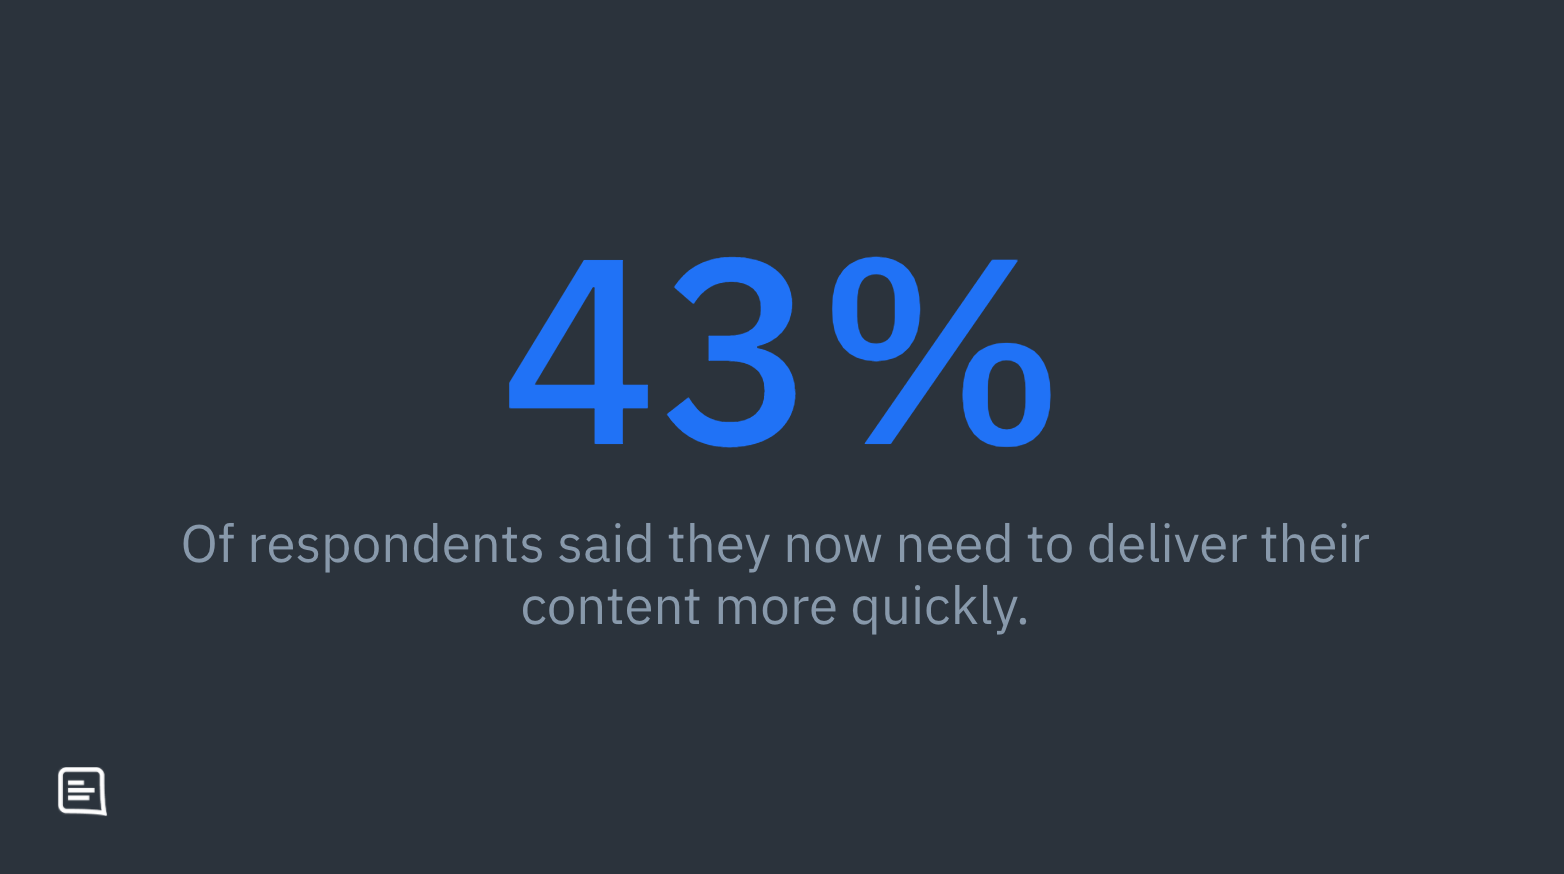 A slide showing the text: 43% of respondents said they now need to deliver their content more quickly.